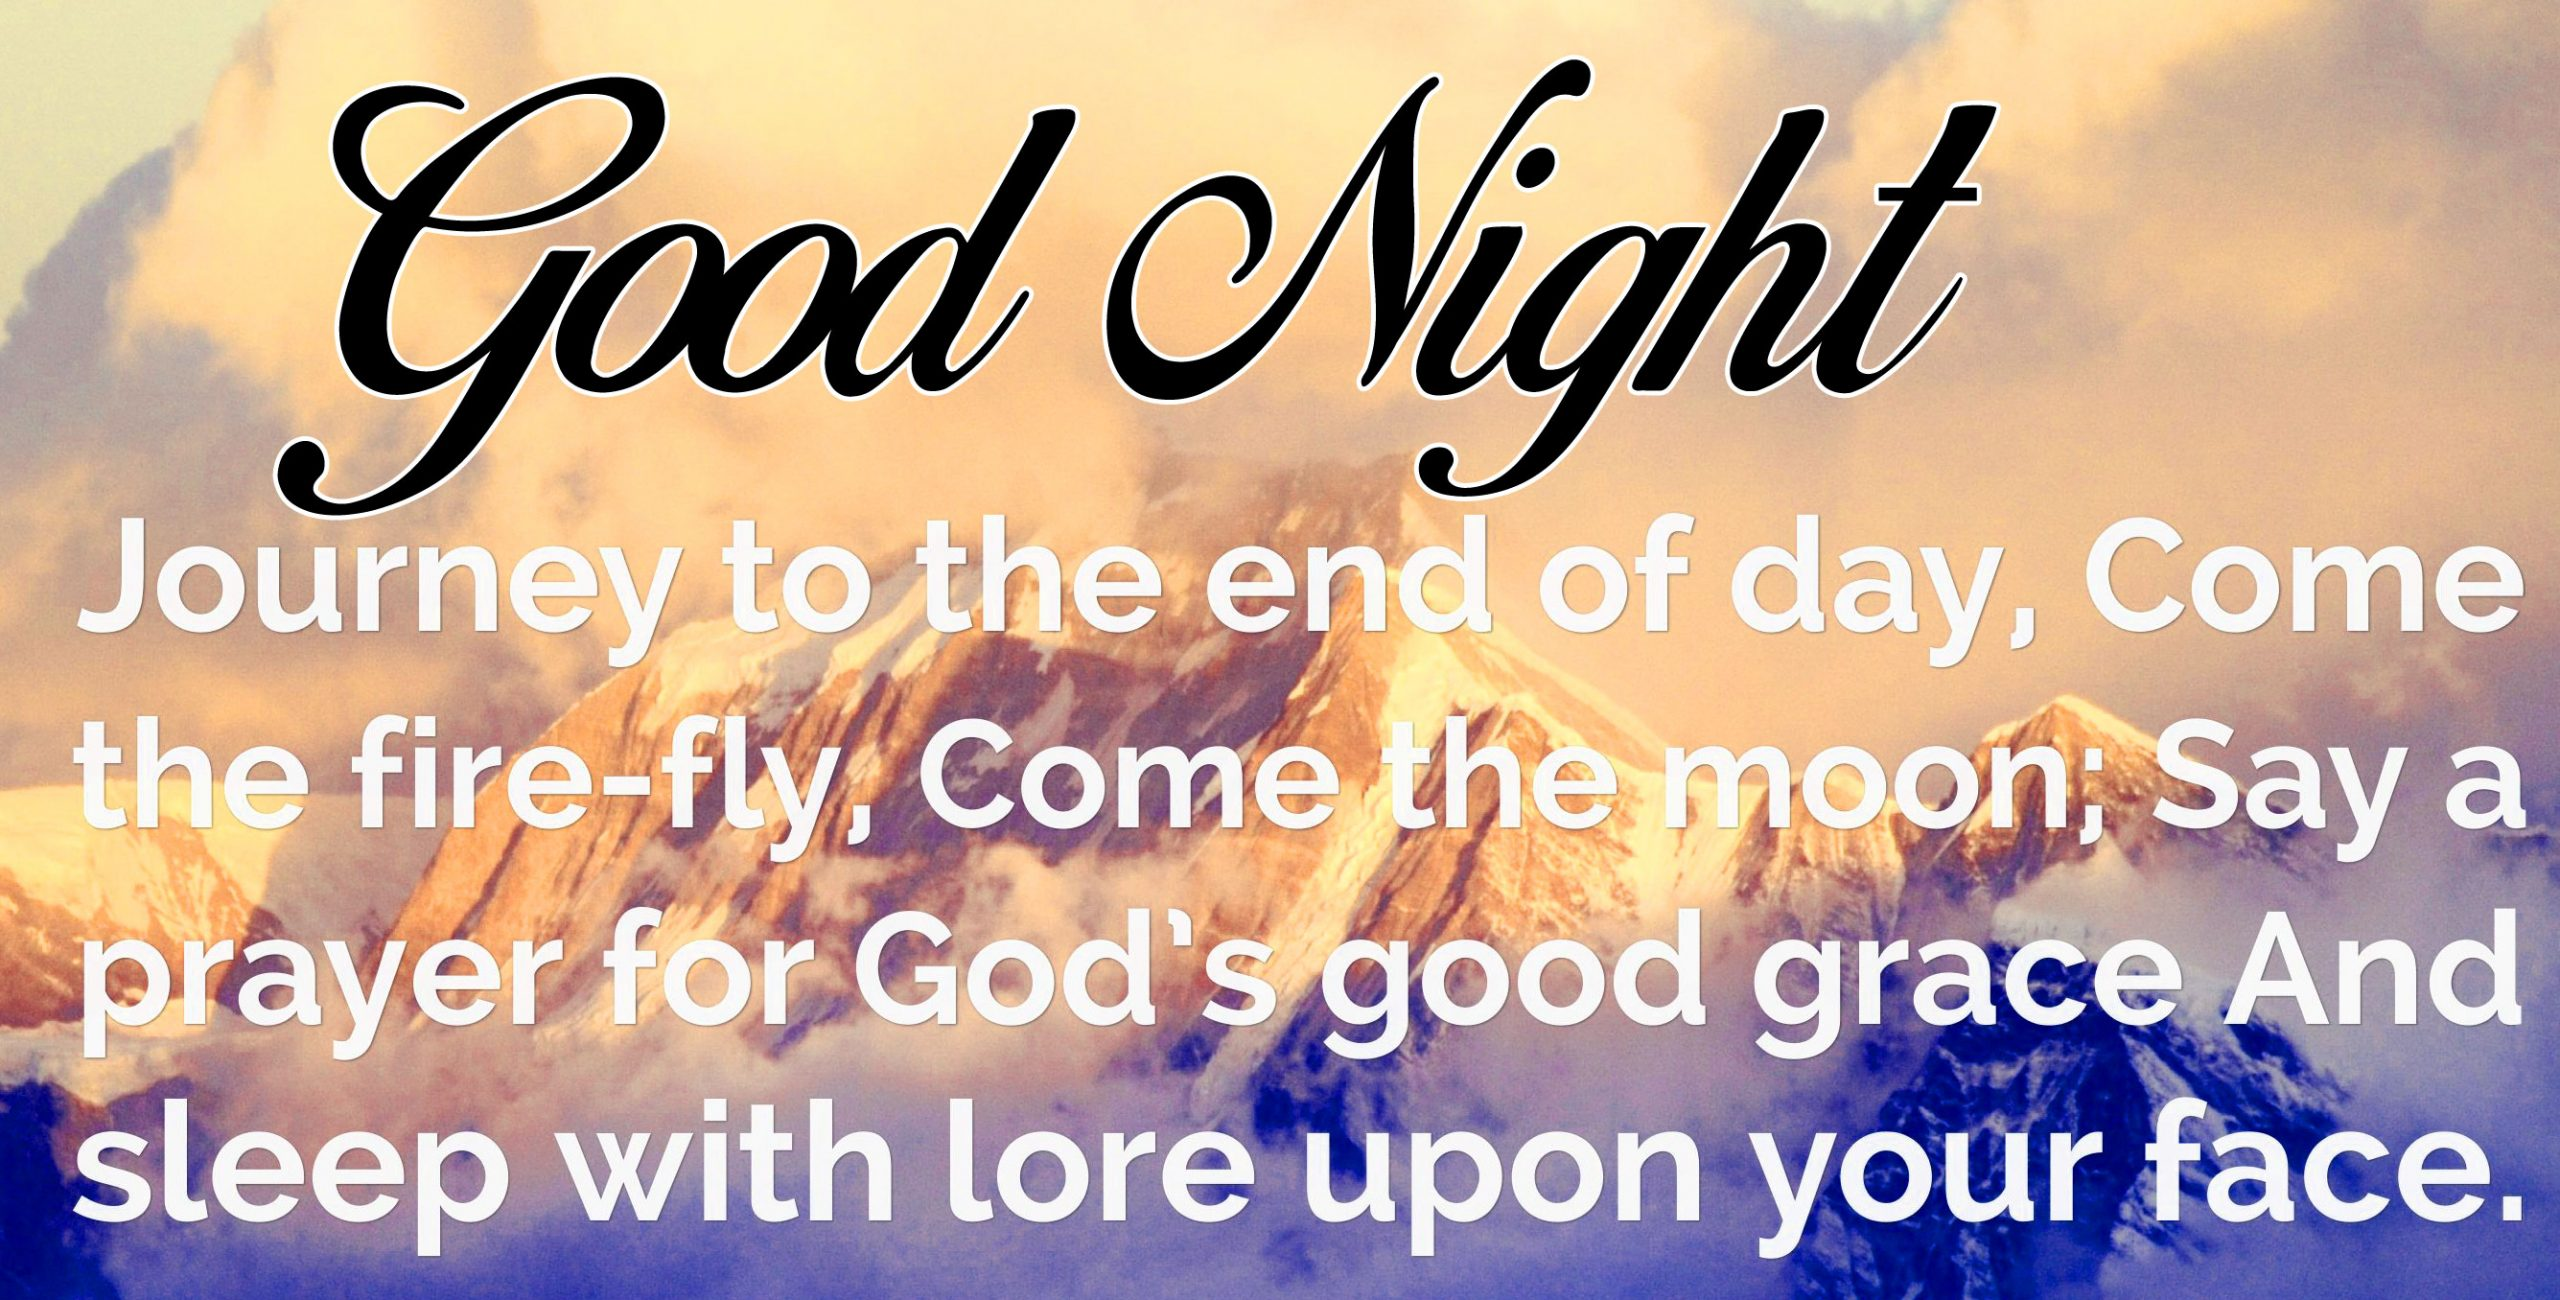 50+ Good Night prayers quotes (latest updated)